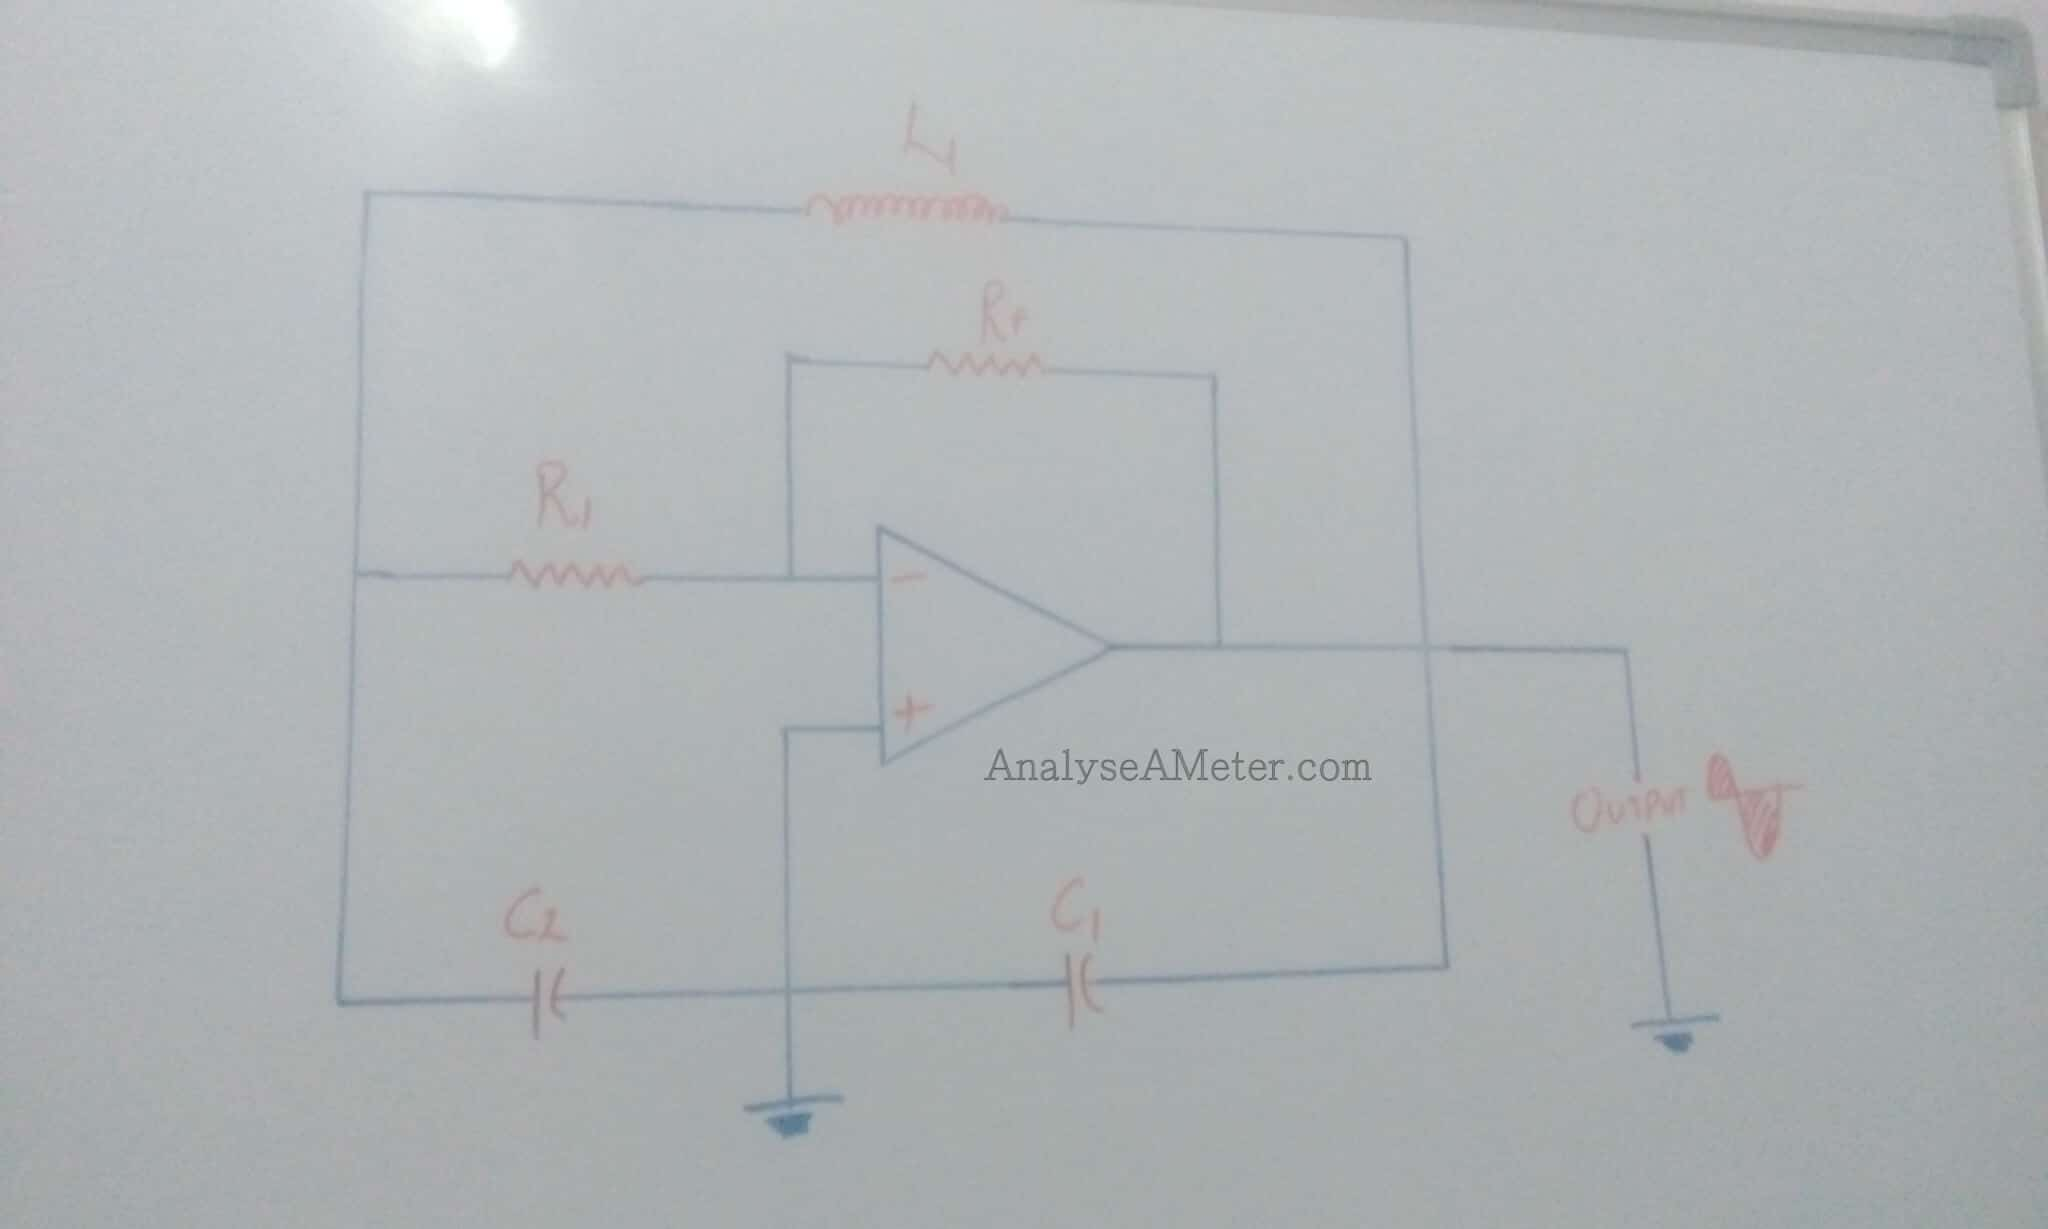 Colpitts Oscillator Brief Guide Analyse A Meter Thermometer Circuit Schematic Using Operational Amplifiers Op Amp Image